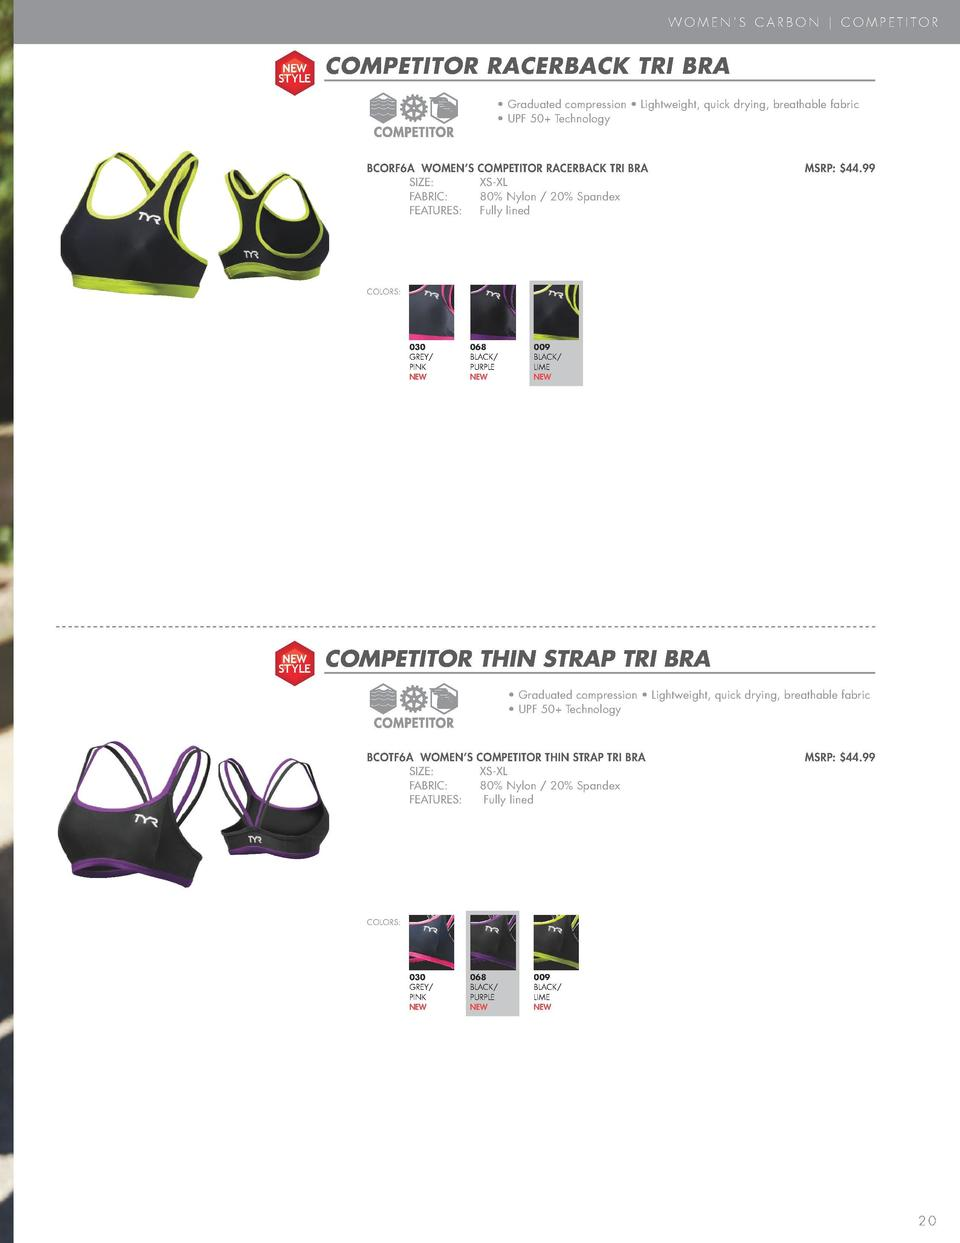 WOMEN   S CARBON   COMPETITOR  ECHN C A L S W I70.3 M CHAMPION LAURENTGOSS   IIRONMAN NEW STYLE  COMPETITOR RACERBACK TRI ...